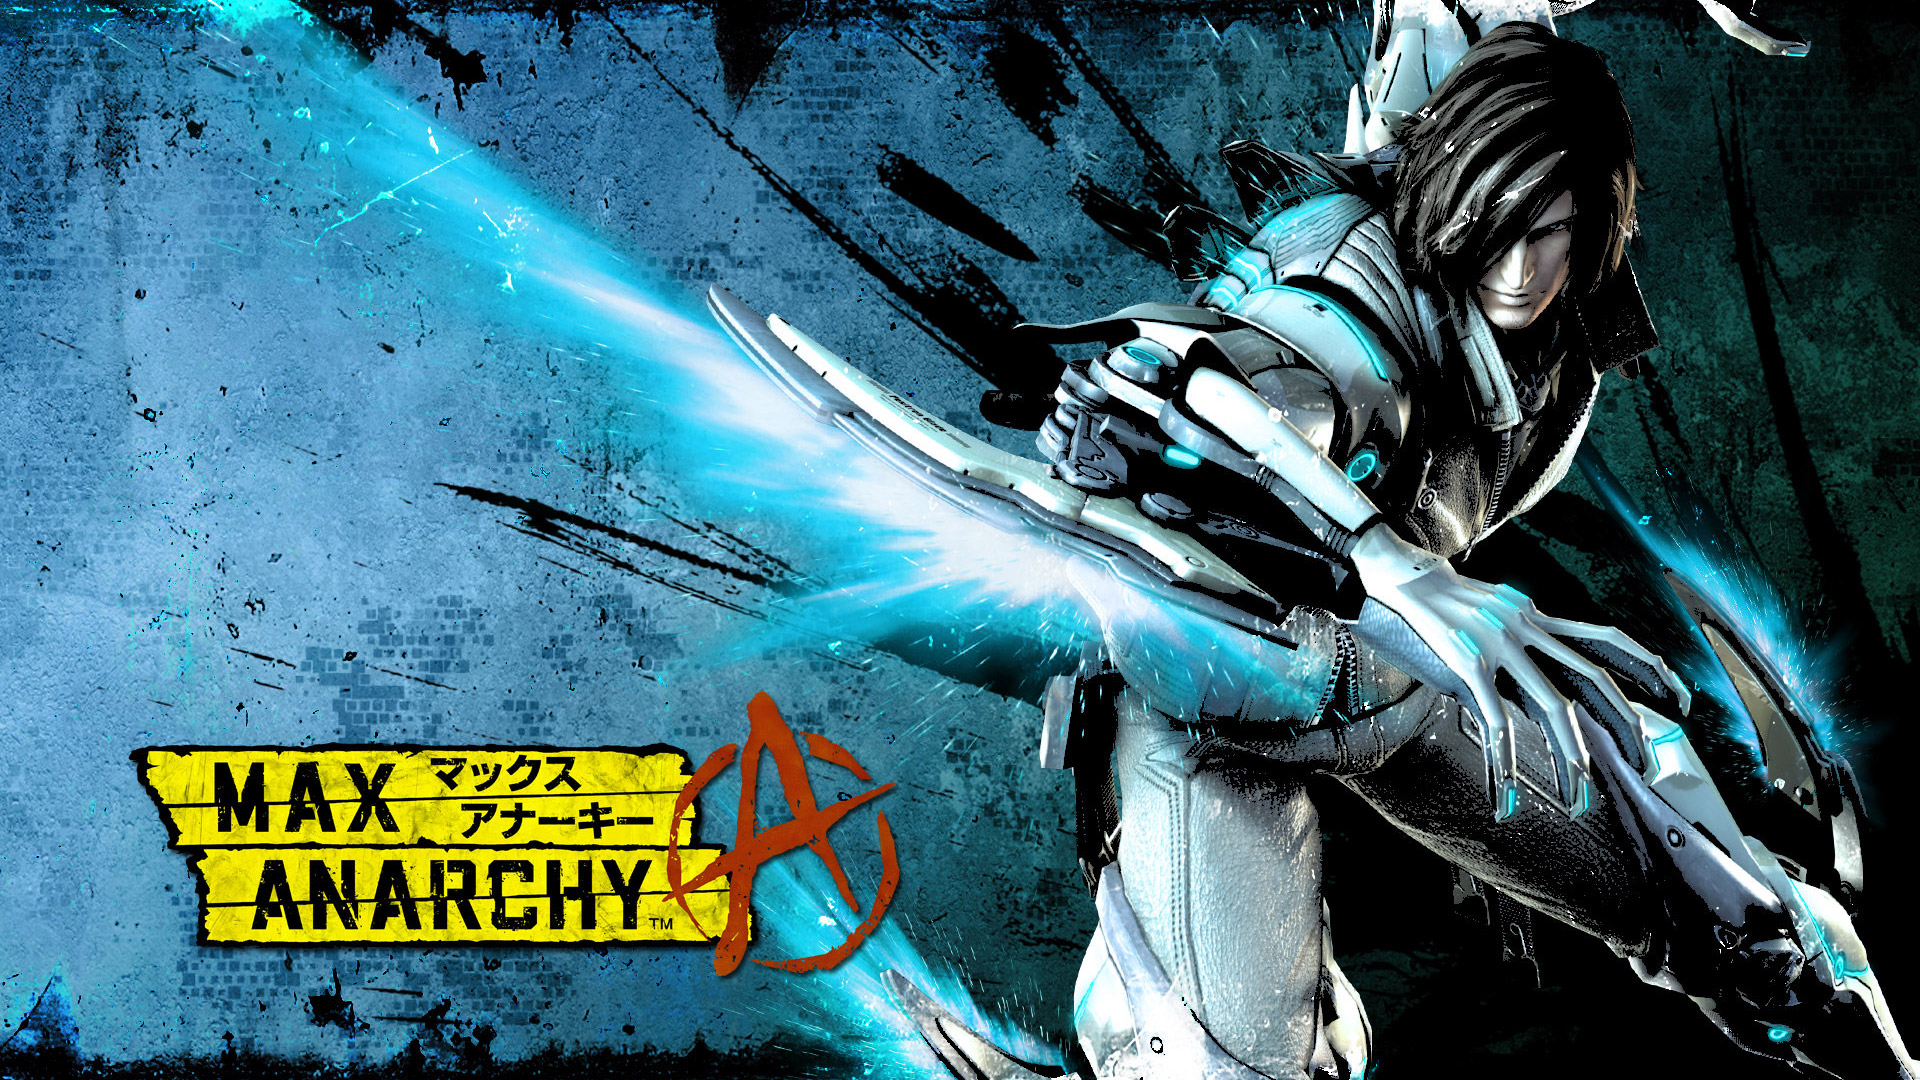 Free Anarchy Reigns Wallpaper in 1920x1080